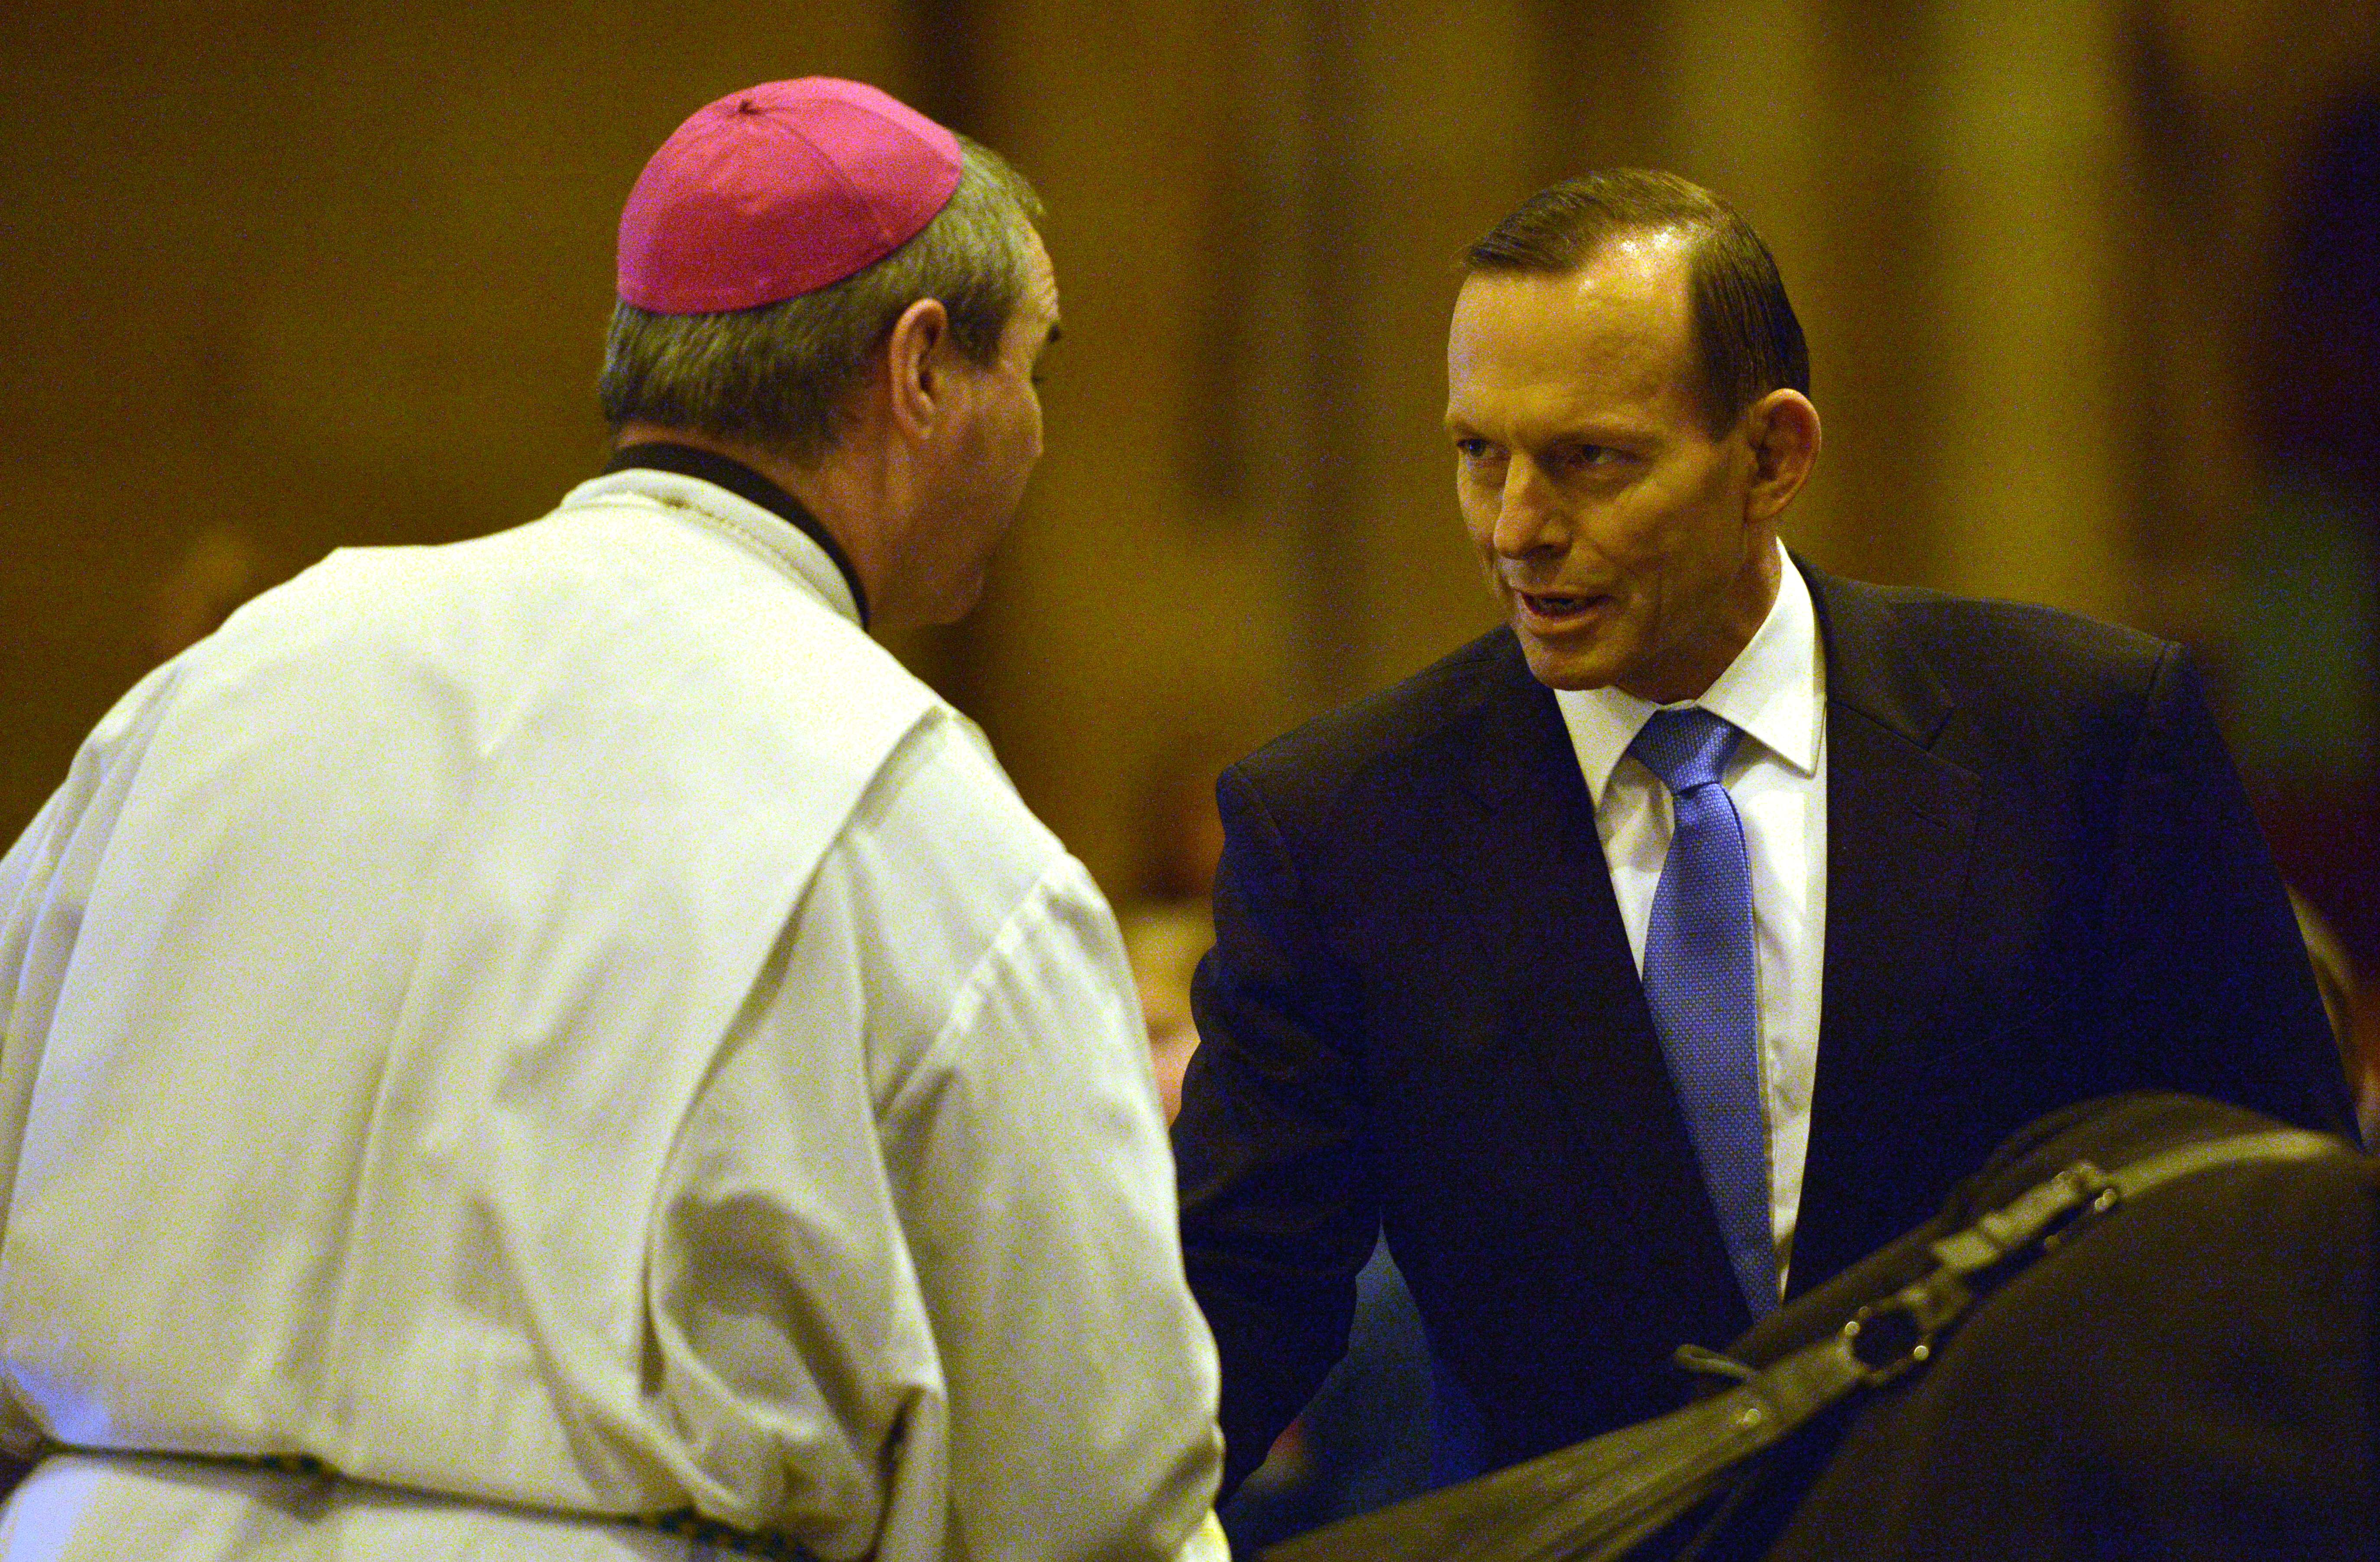 Australian Prime Minister Tony Abbott, right, attends a service for victims of Malaysia Airlines Flight 17 at St. Mary's Cathedral in Sydney on July 20, 2014.